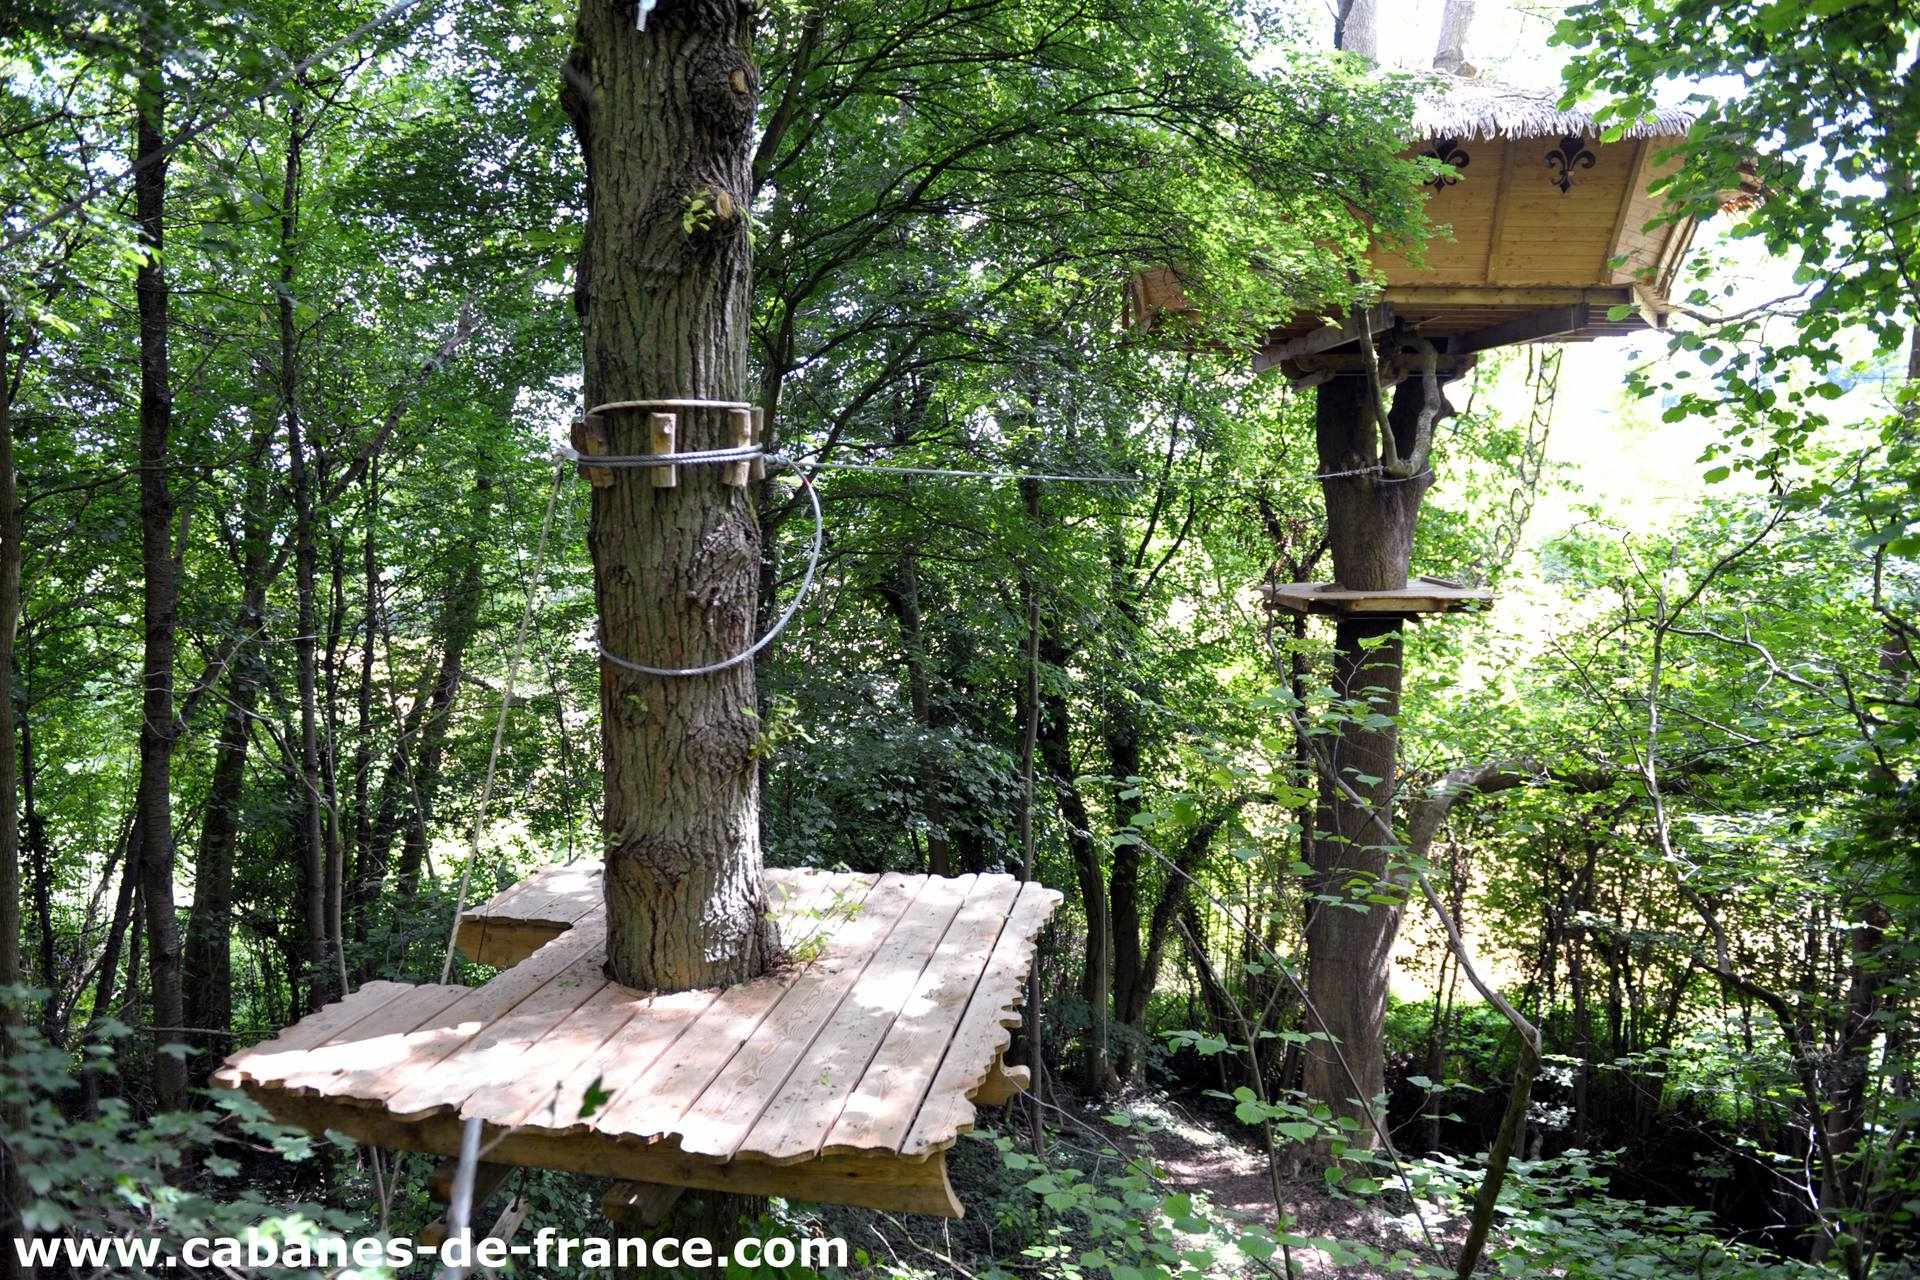 cabane le soleil royal cabane dans les arbres en haute normandie cabanes de france. Black Bedroom Furniture Sets. Home Design Ideas